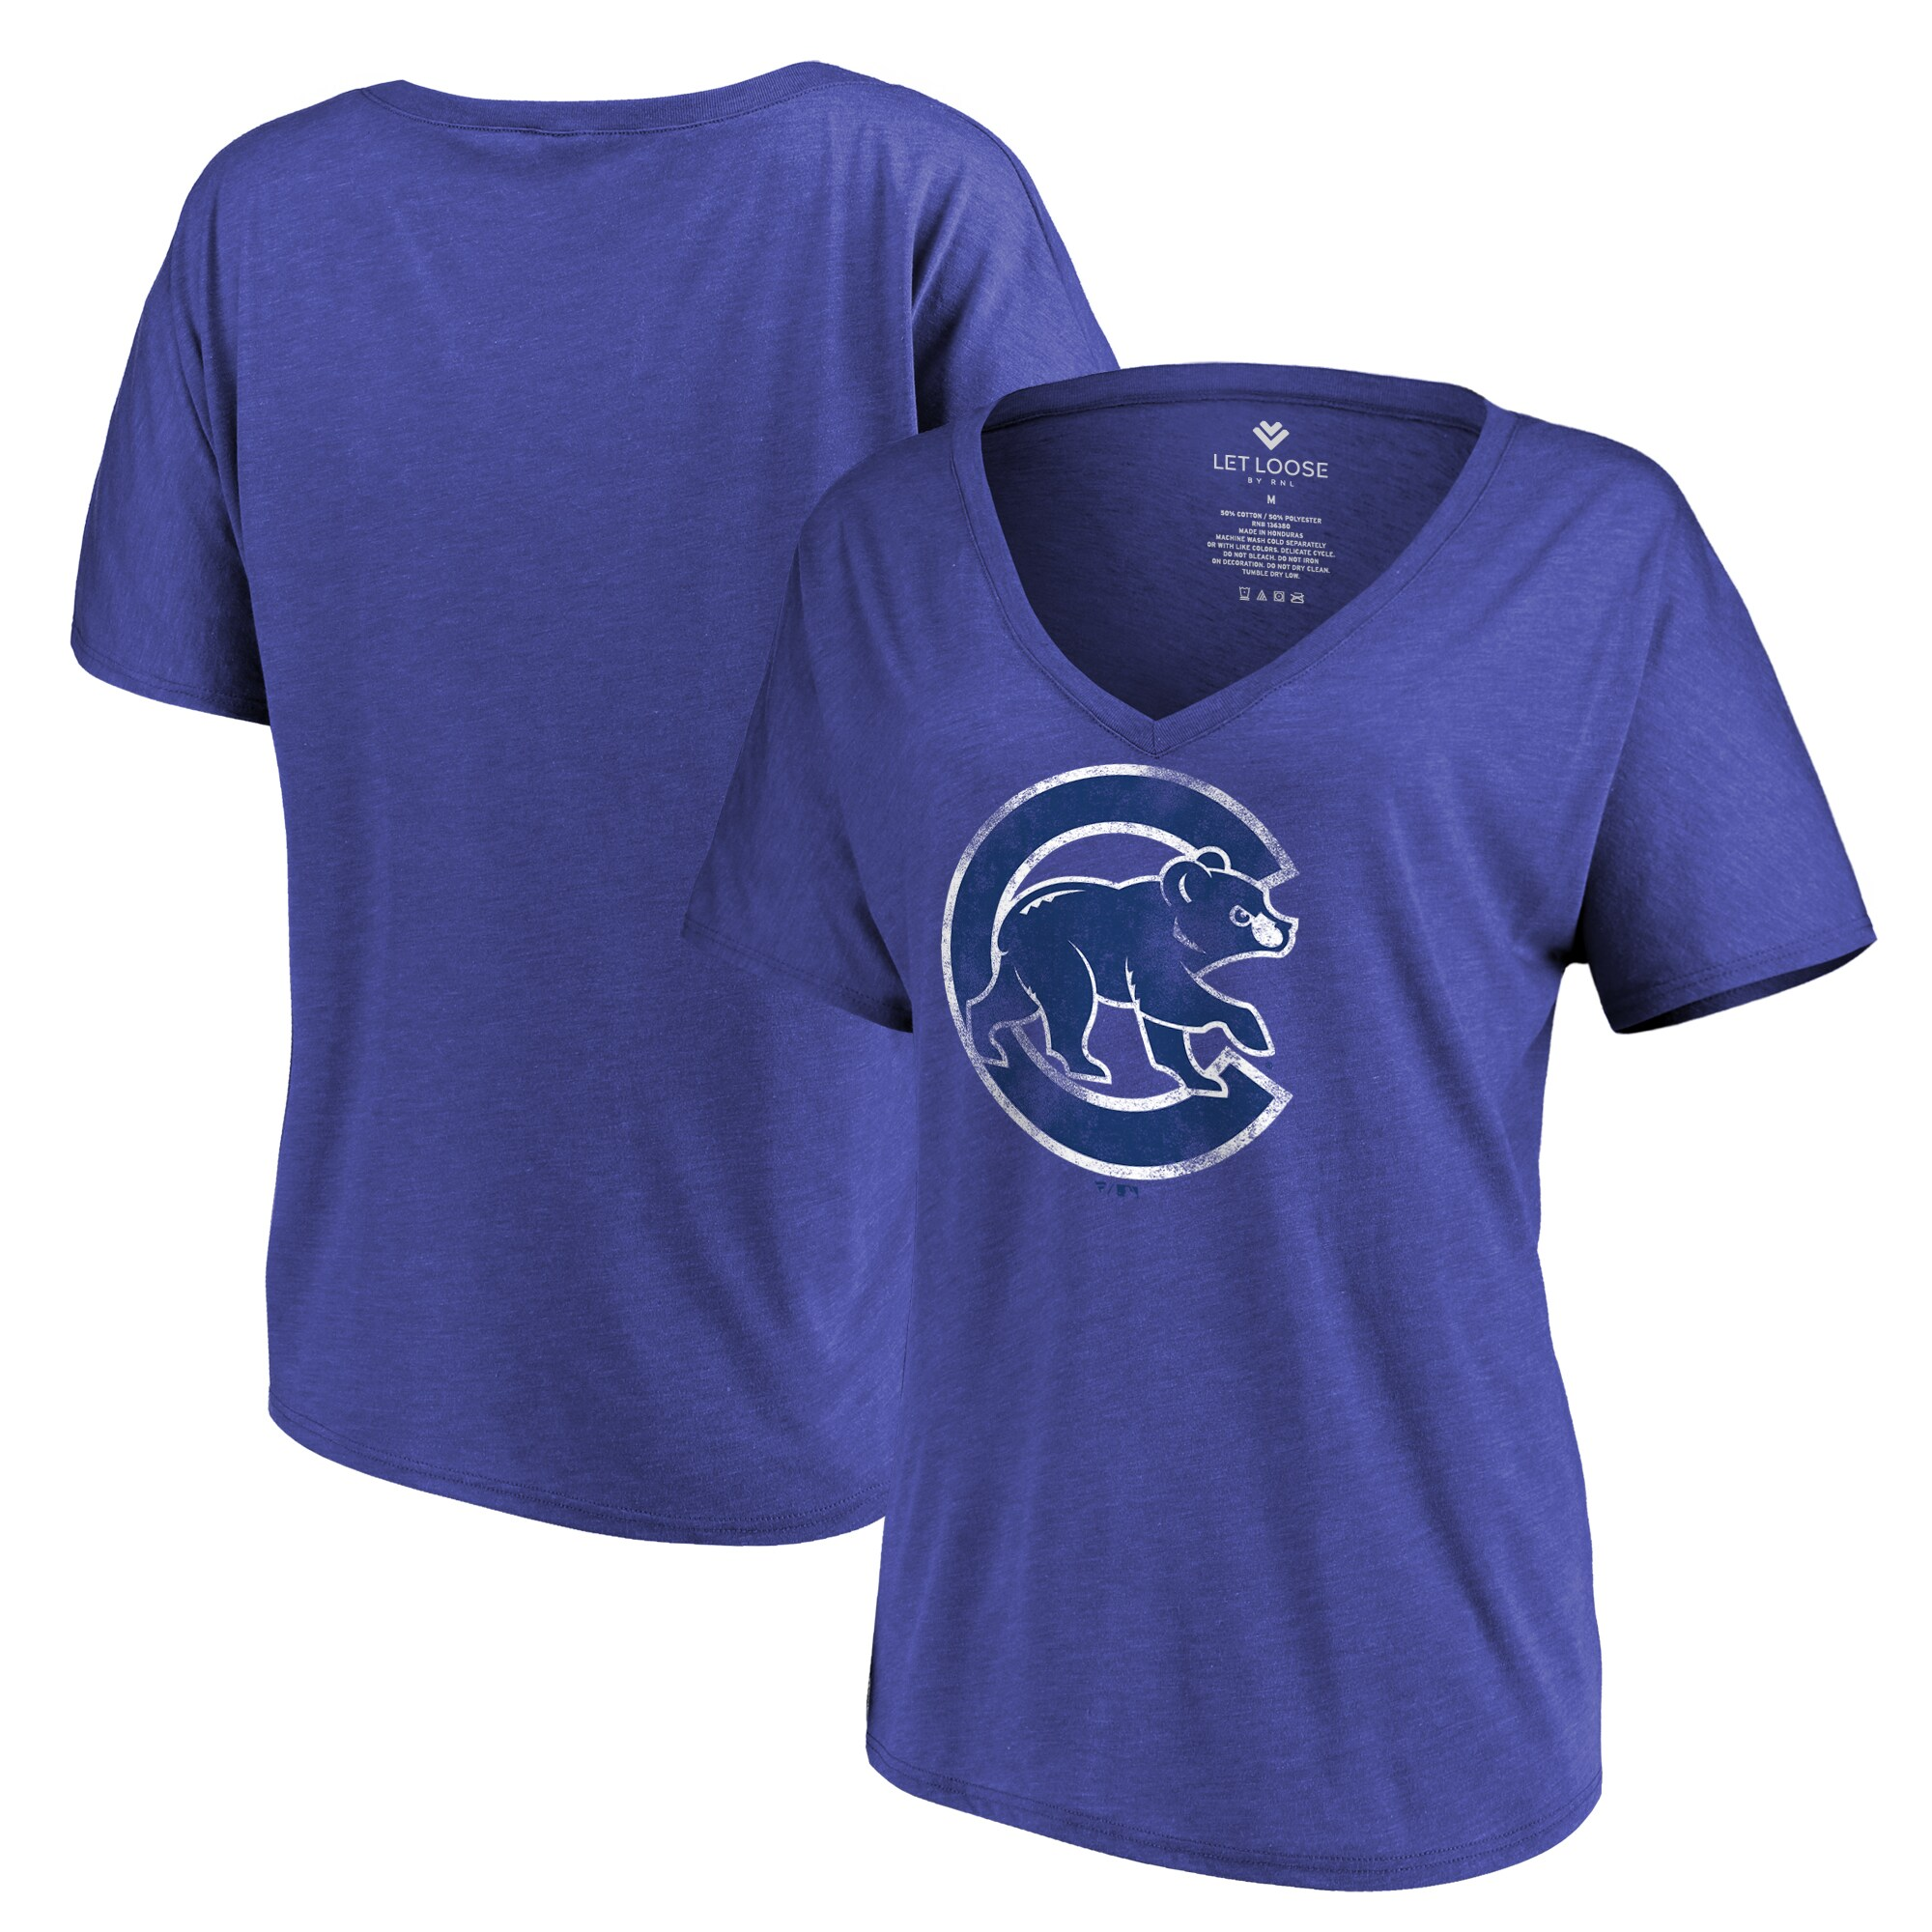 Chicago Cubs Let Loose by RNL Women's Distressed Primary Logo T-Shirt - Royal